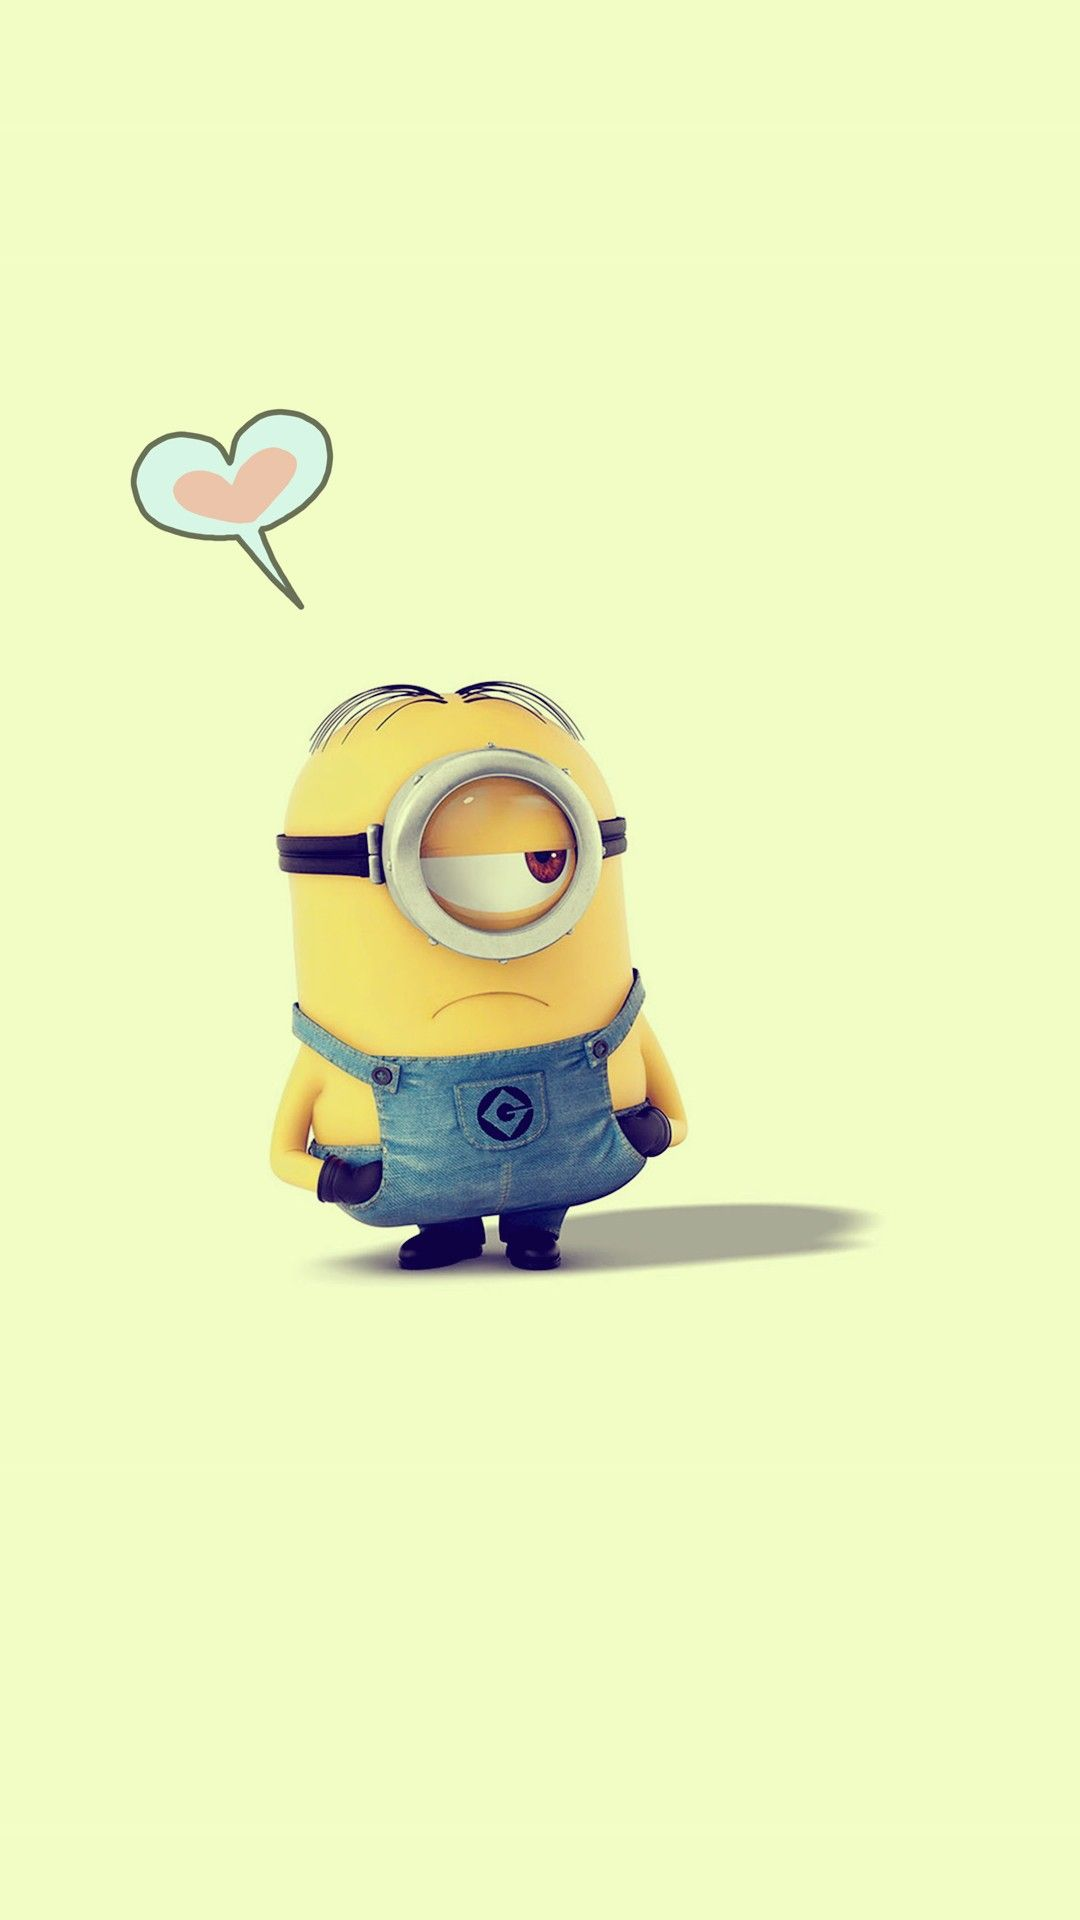 Tumblr iphone wallpaper minions - Adorable Despicable Me Minion Apple Iphone 6 Plus Wallpaper Hd For 2014 Halloween 2014